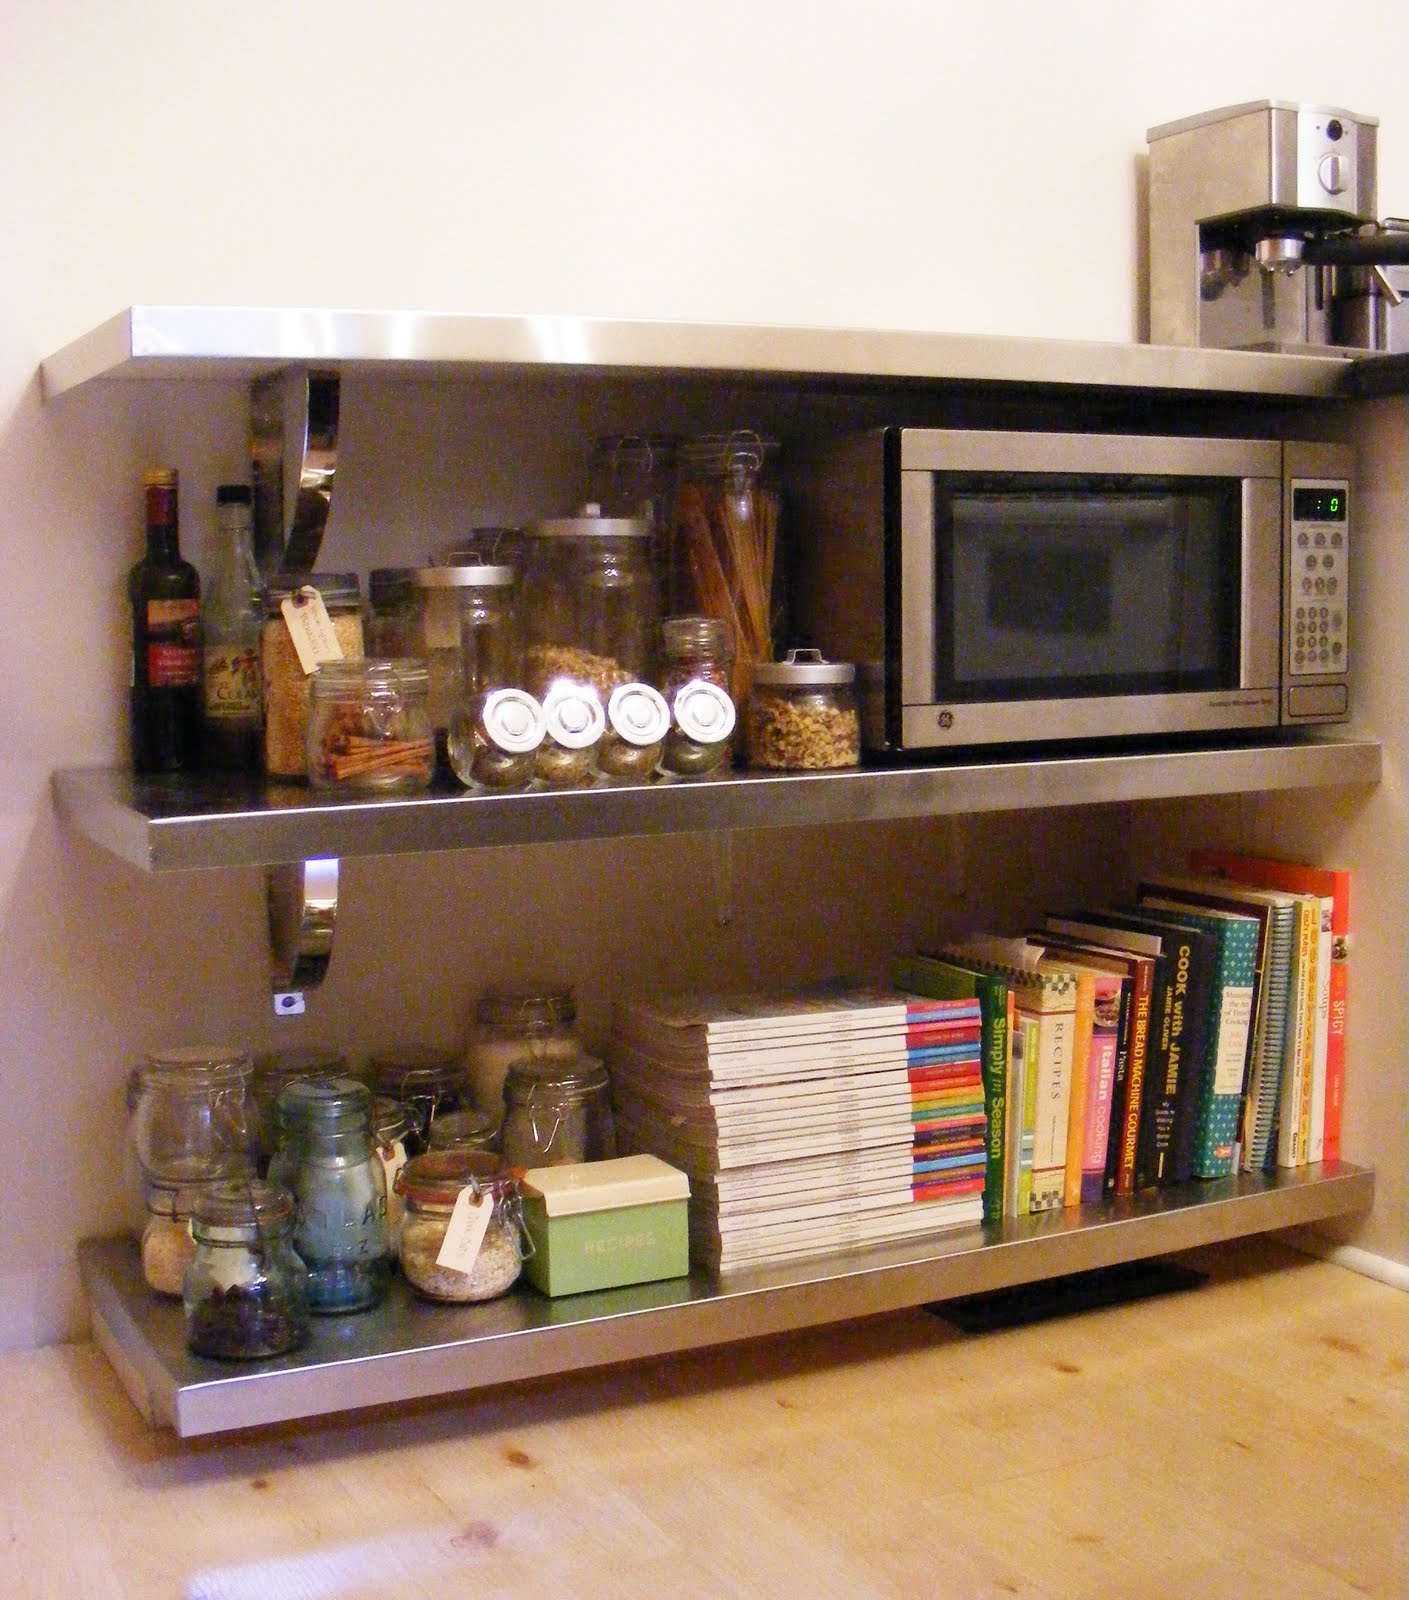 Kitchen Shelves Pictures: Jenna Rose Journal: Kitchen Renovation: DIY Stainless